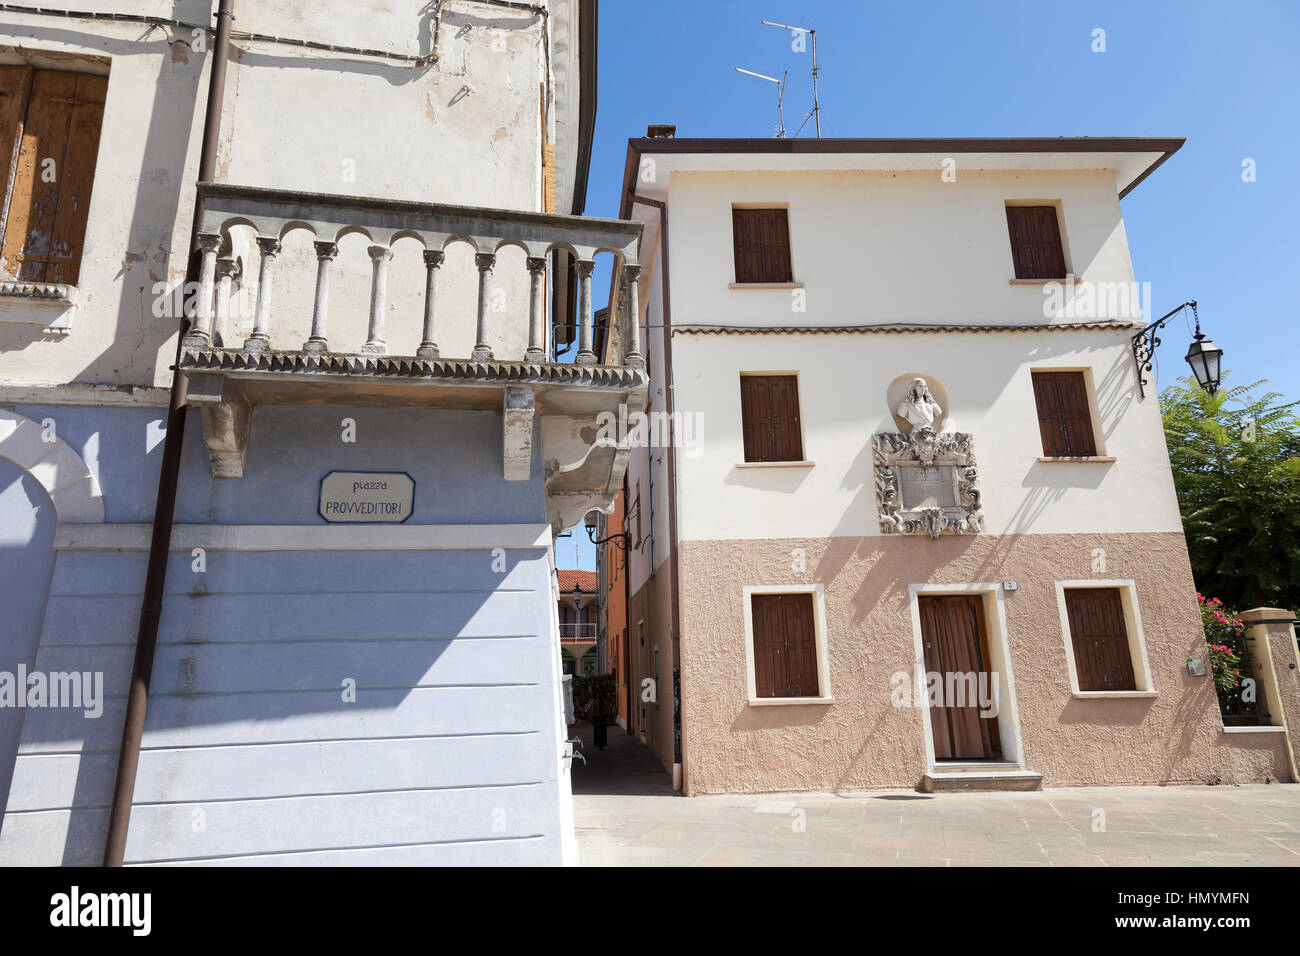 Square with ancient well, Marano Lagunare Stock Photo